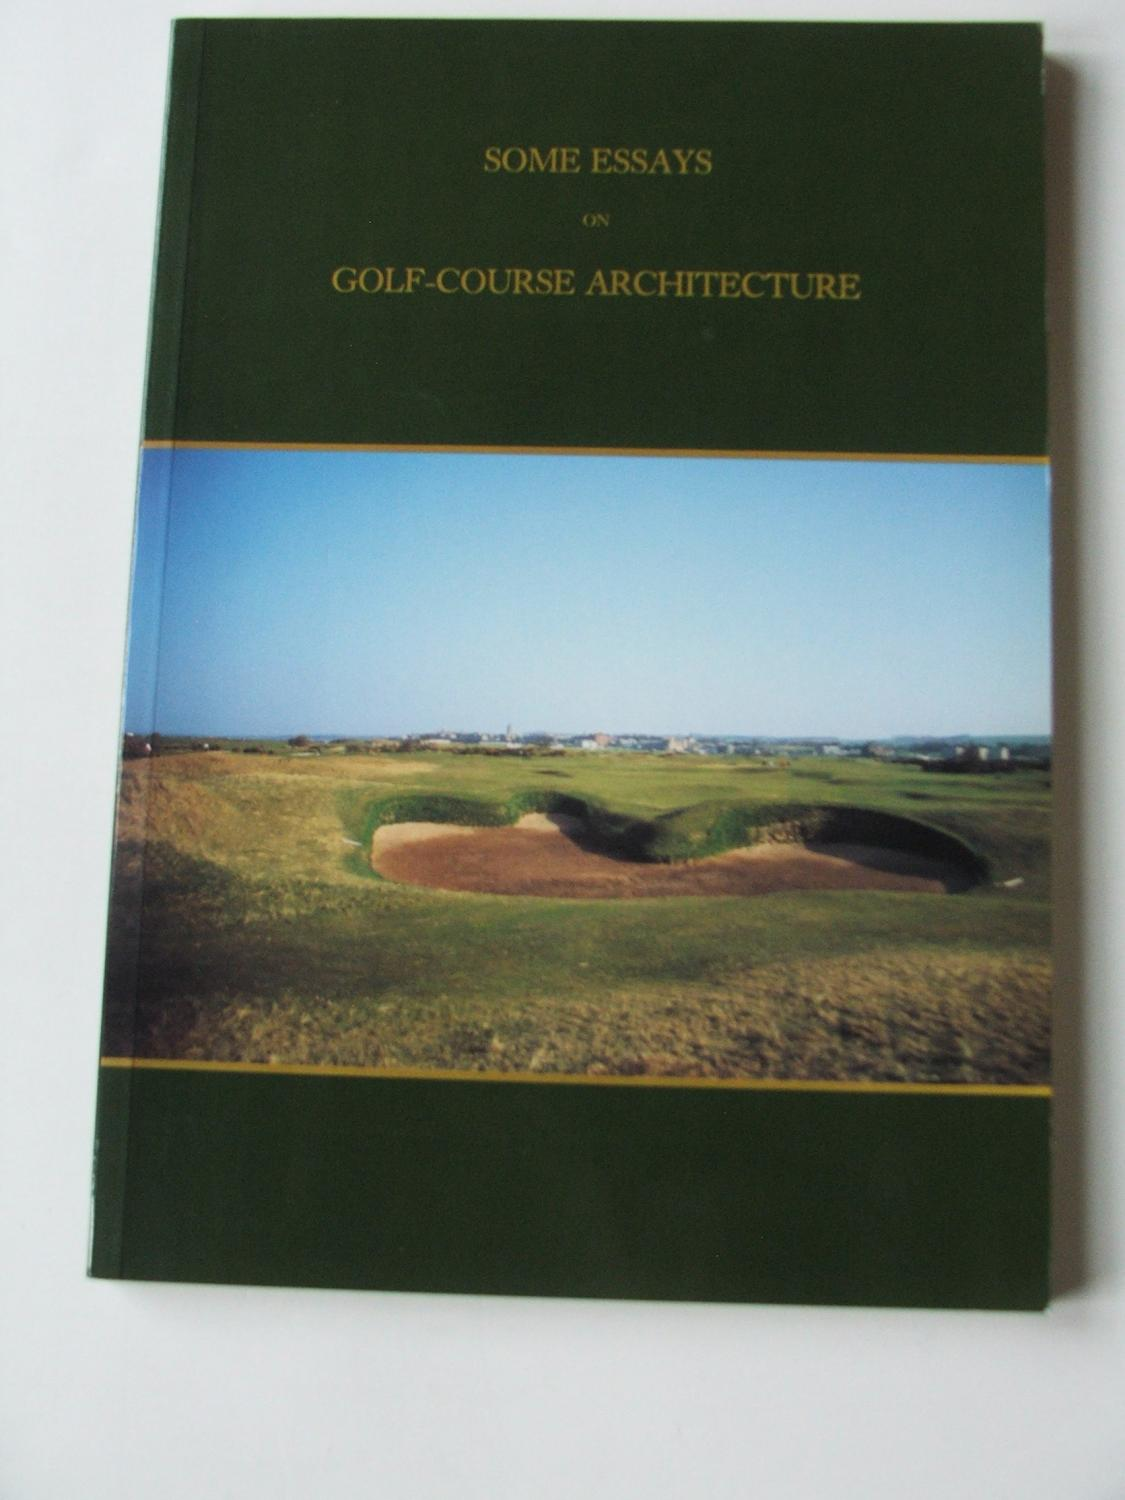 Architecture course essay golf some